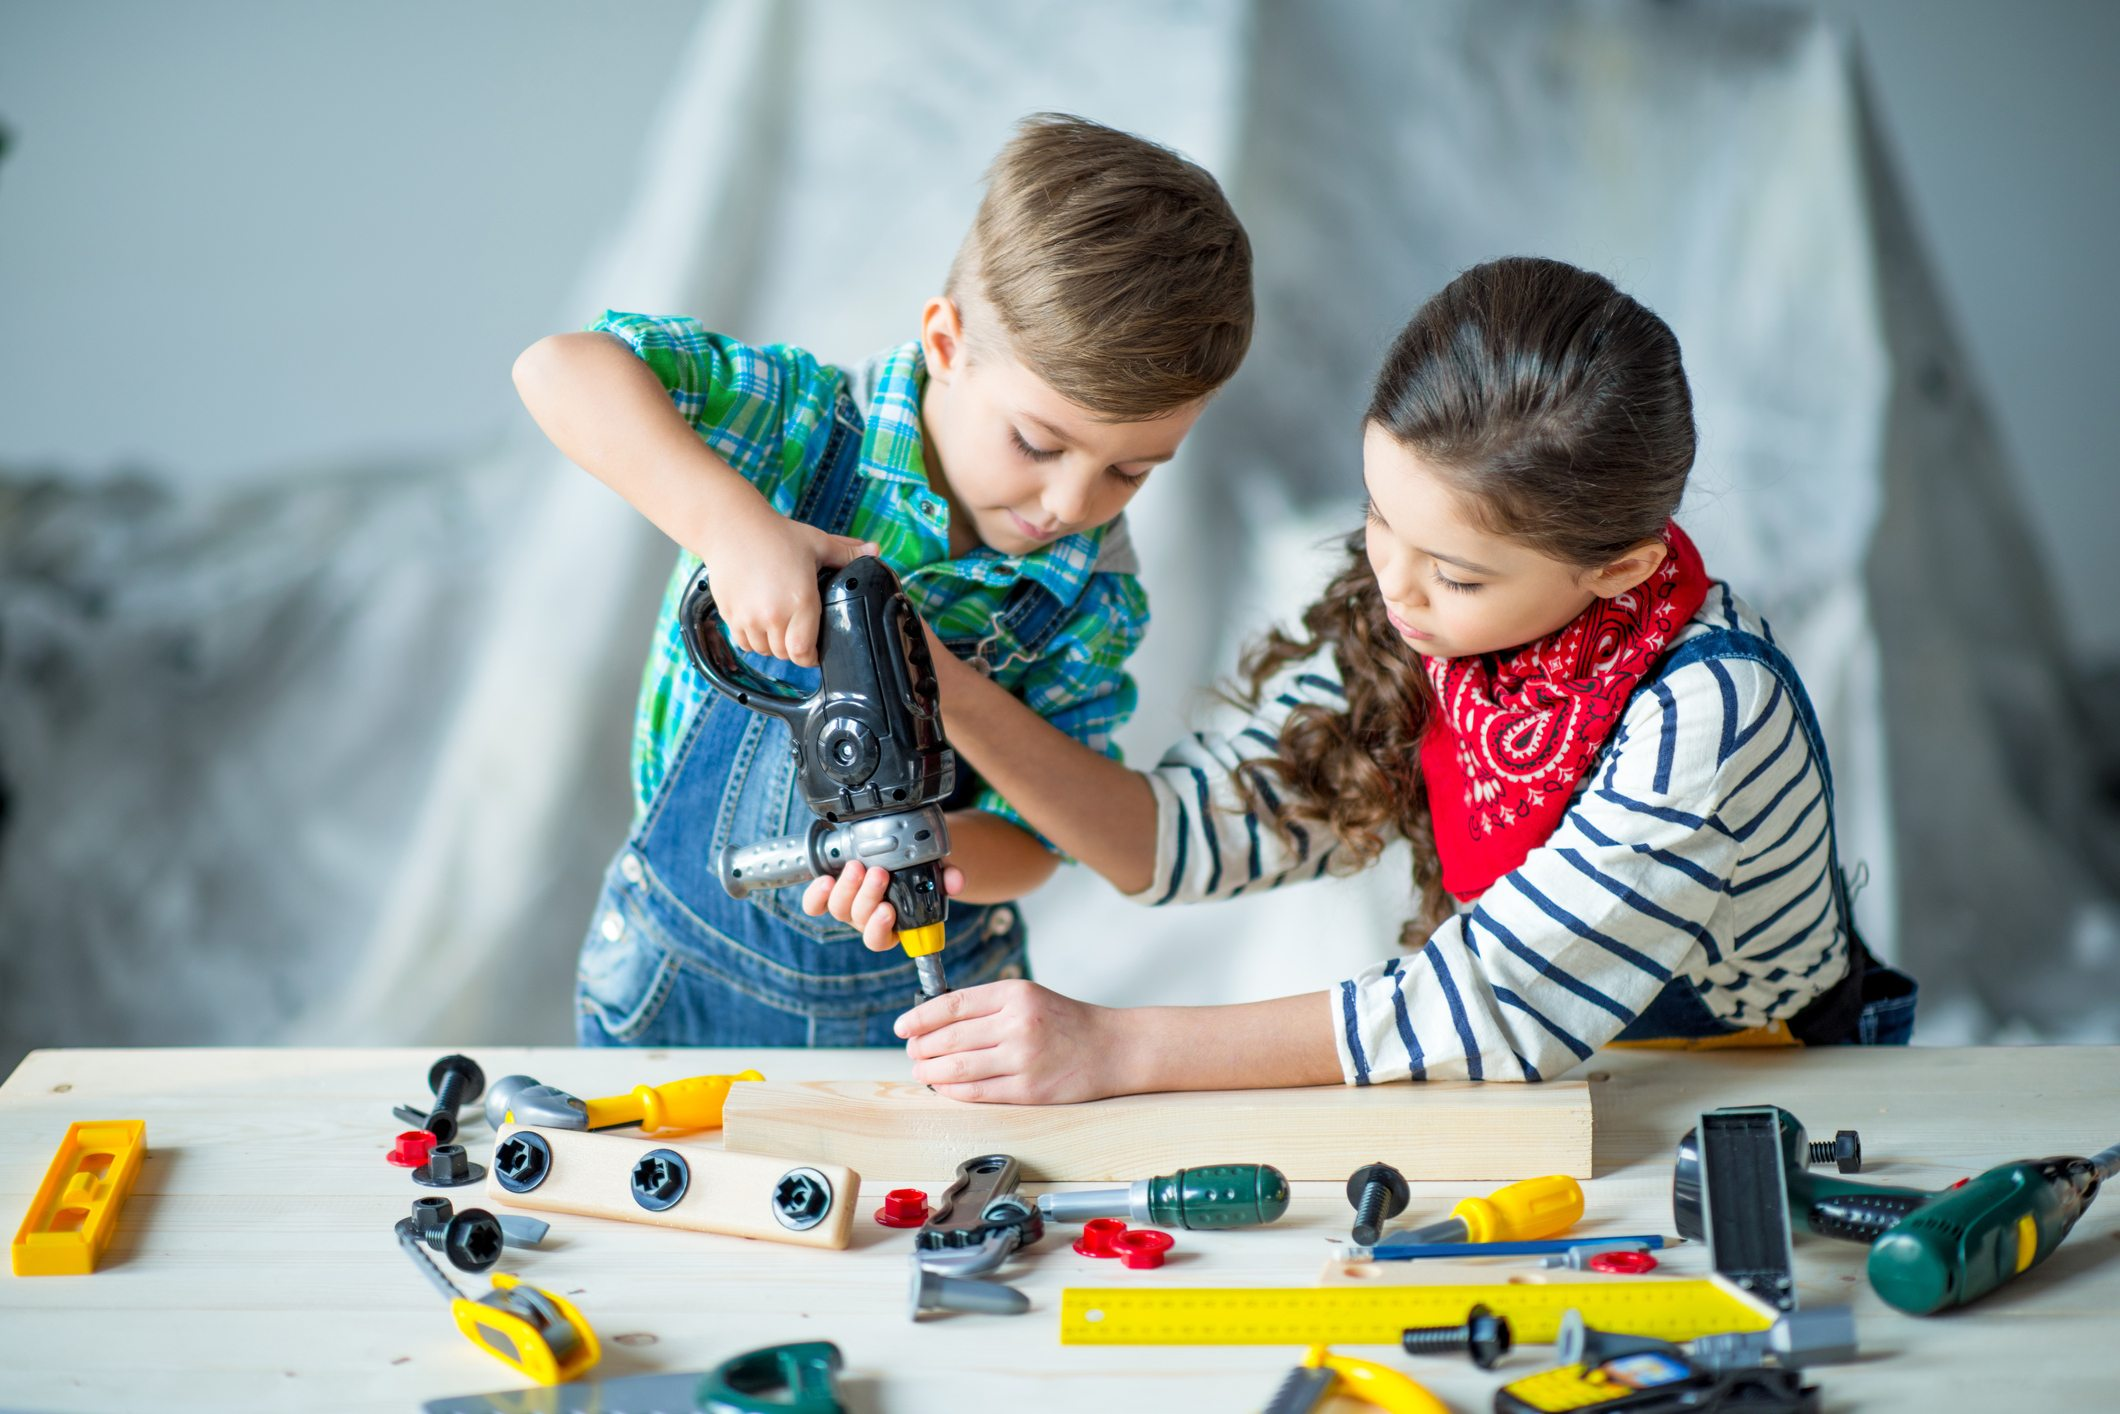 Boy and girl with toy tools